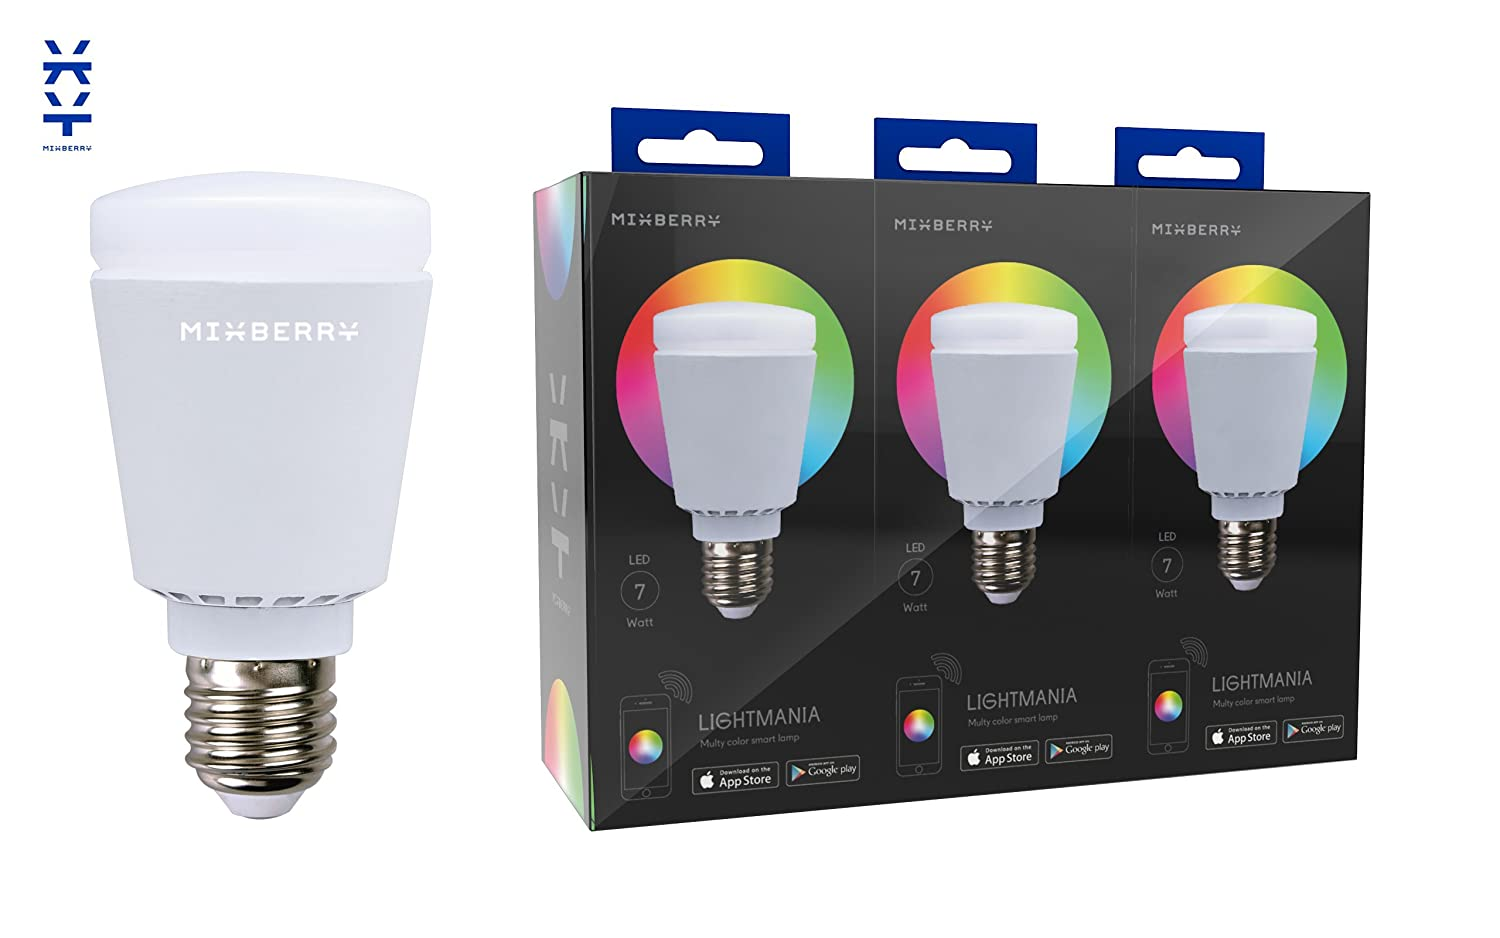 iphone controlled lighting. Bluetooth Smart LED Light Bulb By Mixberry - 3-Pack E27 Medium Base 16 Million Dimmable Colors Features Sleep/Wake \u0026 Party Modes Save 10% Compared To Iphone Controlled Lighting